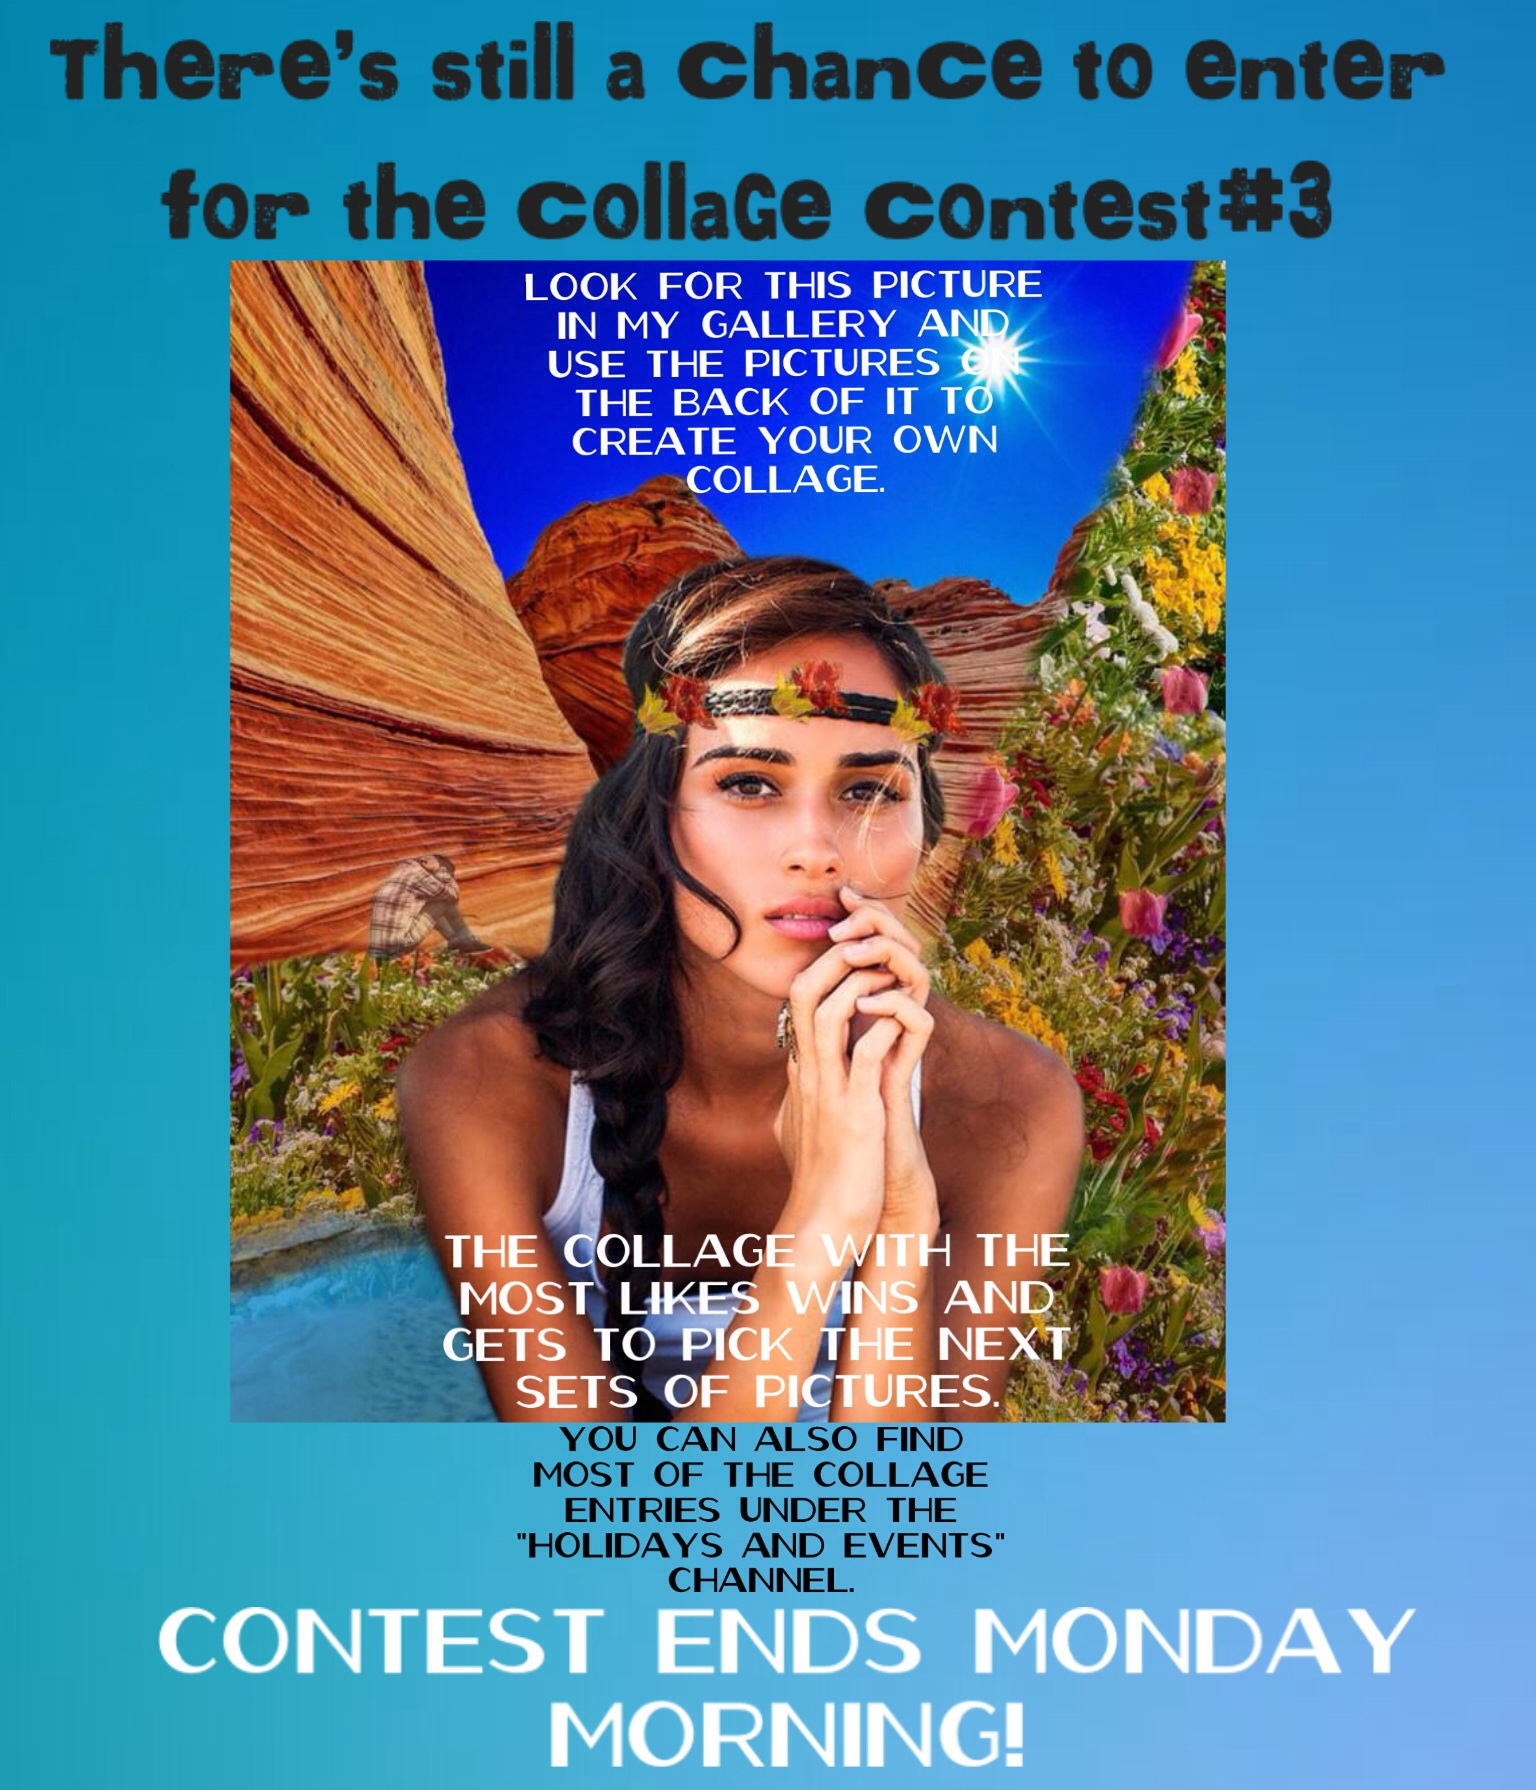 Collage Contest3 Is Ending Soon Please Also Note That Im Not A